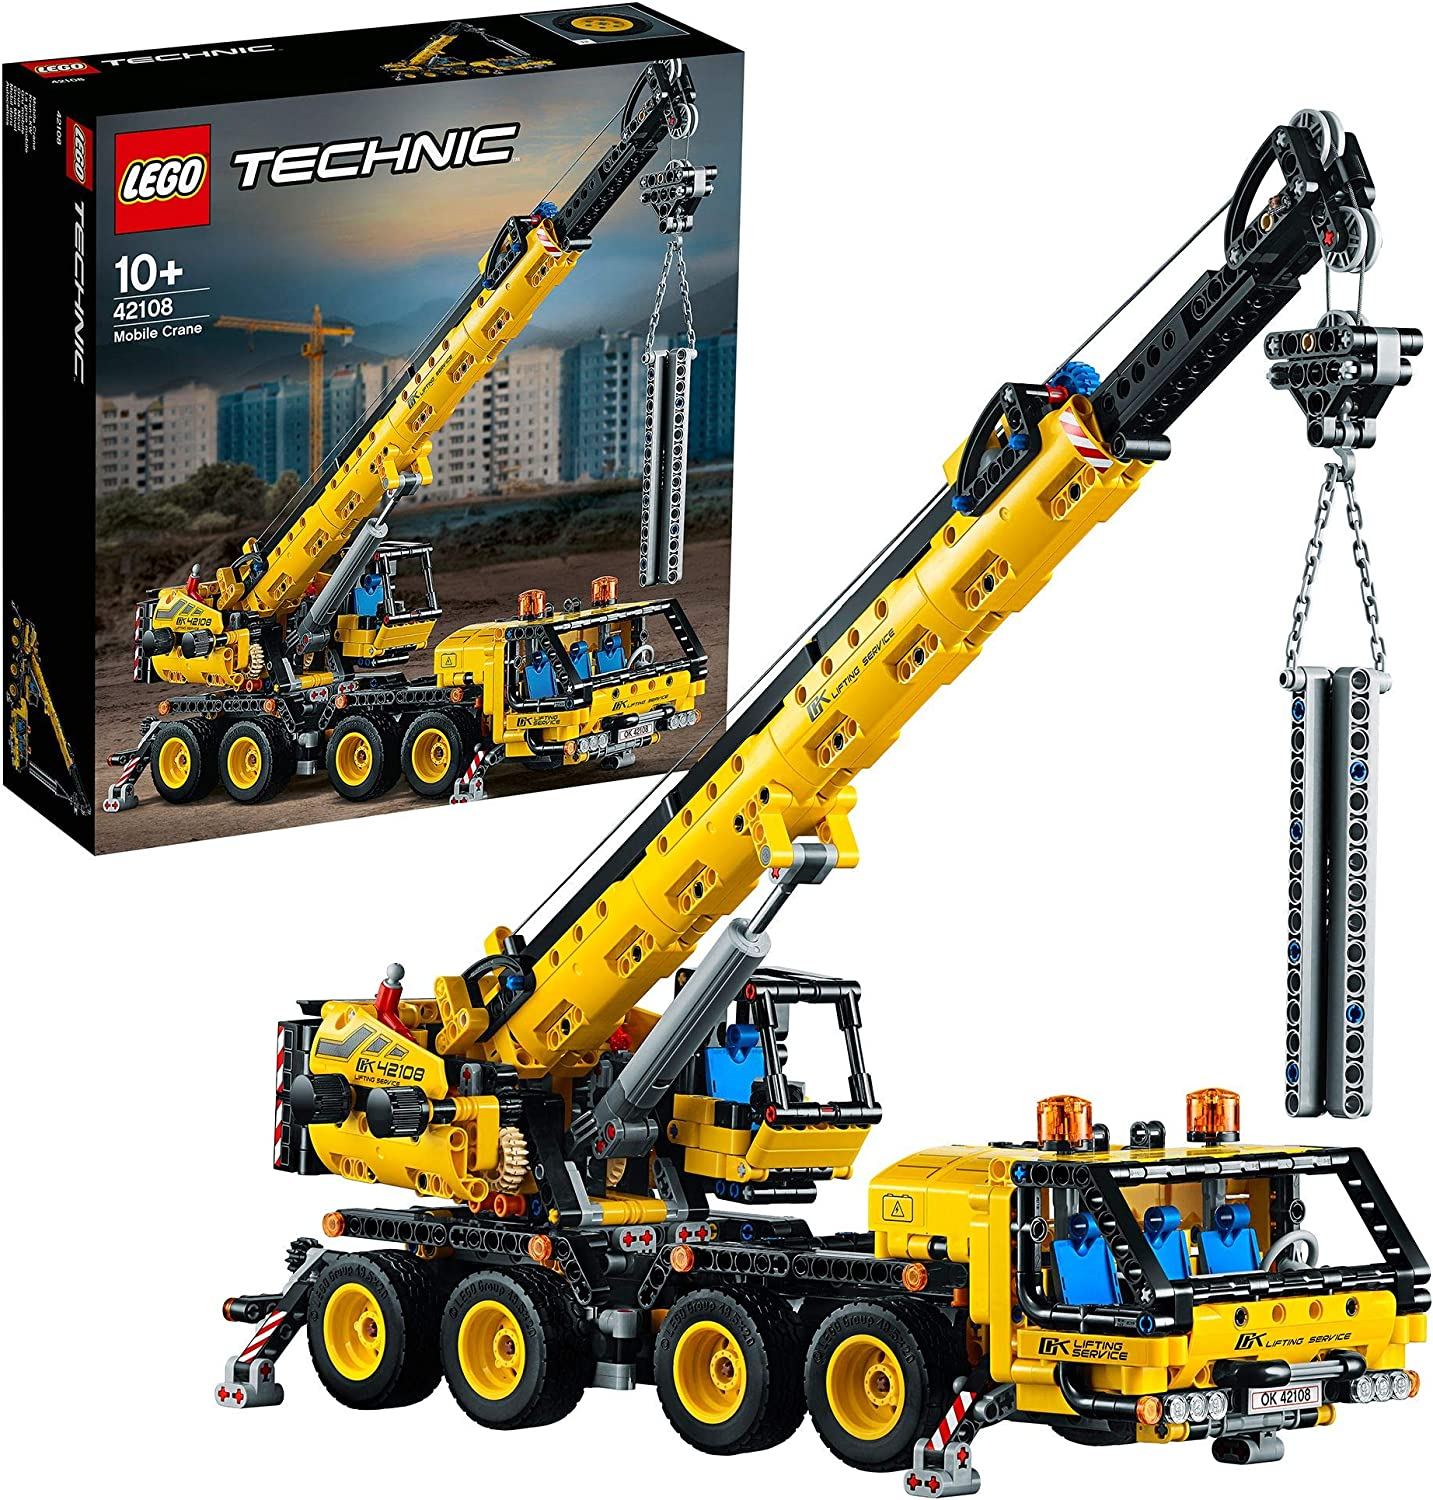 LEGO 42108 Technic Mobile Crane Truck Toy